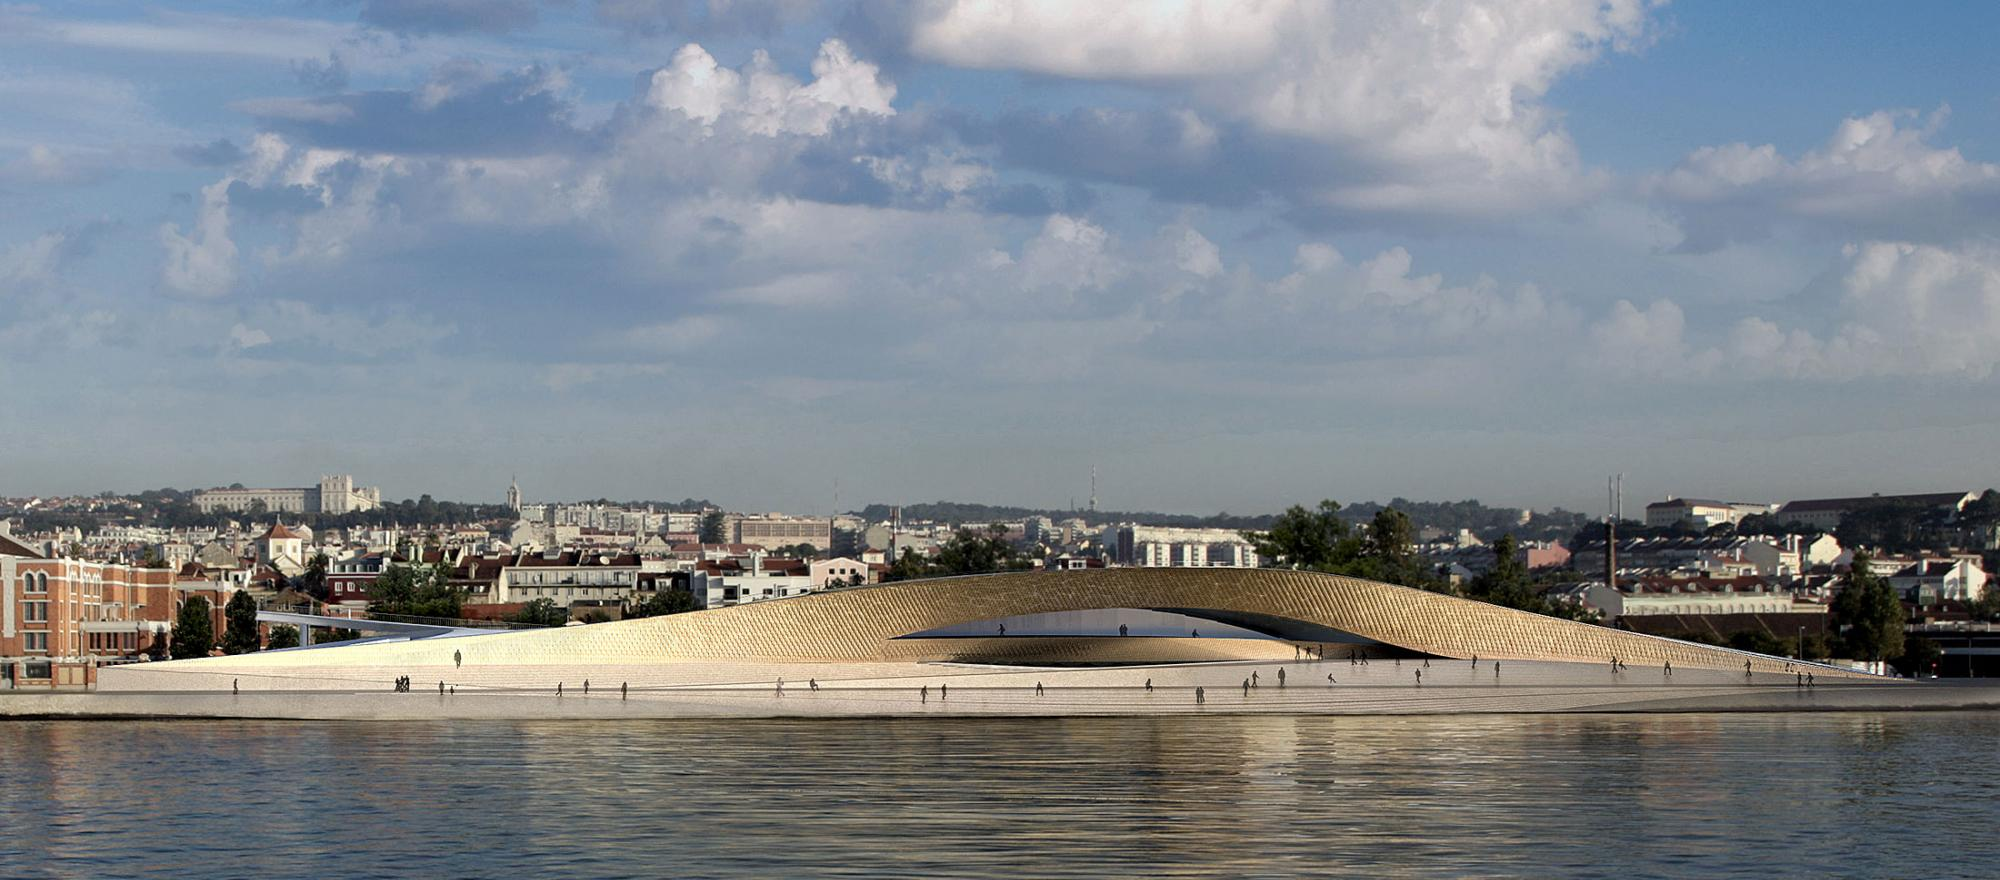 Lisbon's Museum of Art, Architecture, and Technology (MAAT).